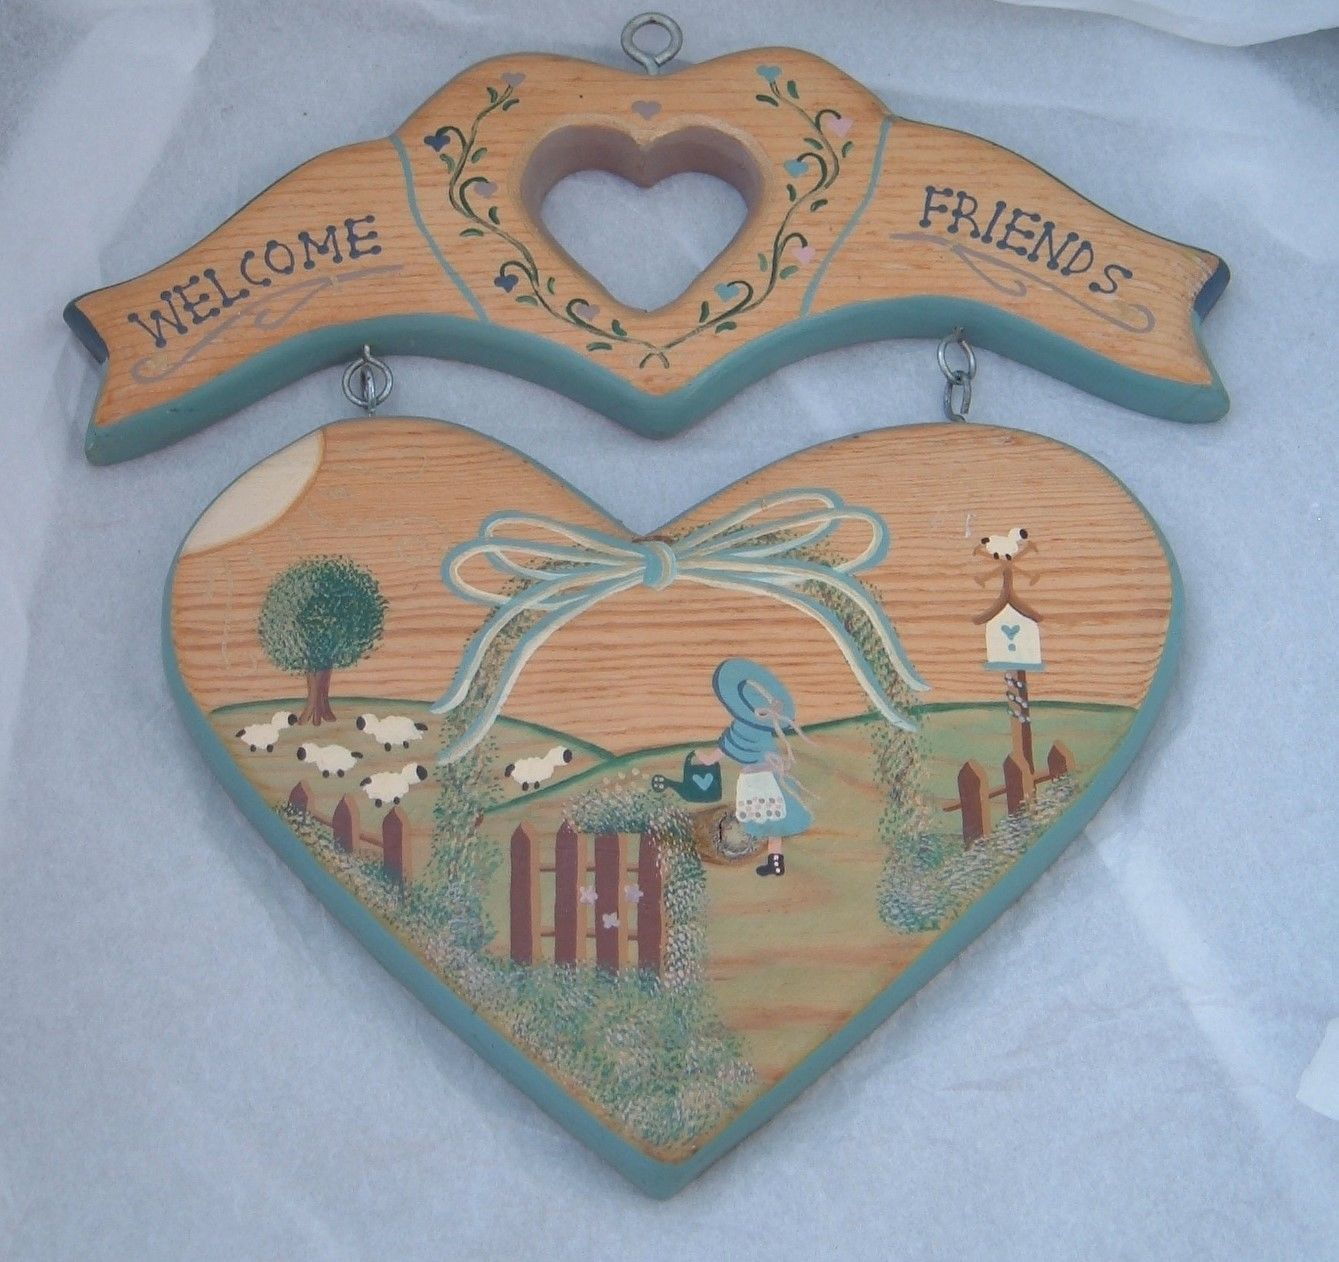 welcome Friends sheep wood Sign Plaque Country Kitsch primitive wall hanging